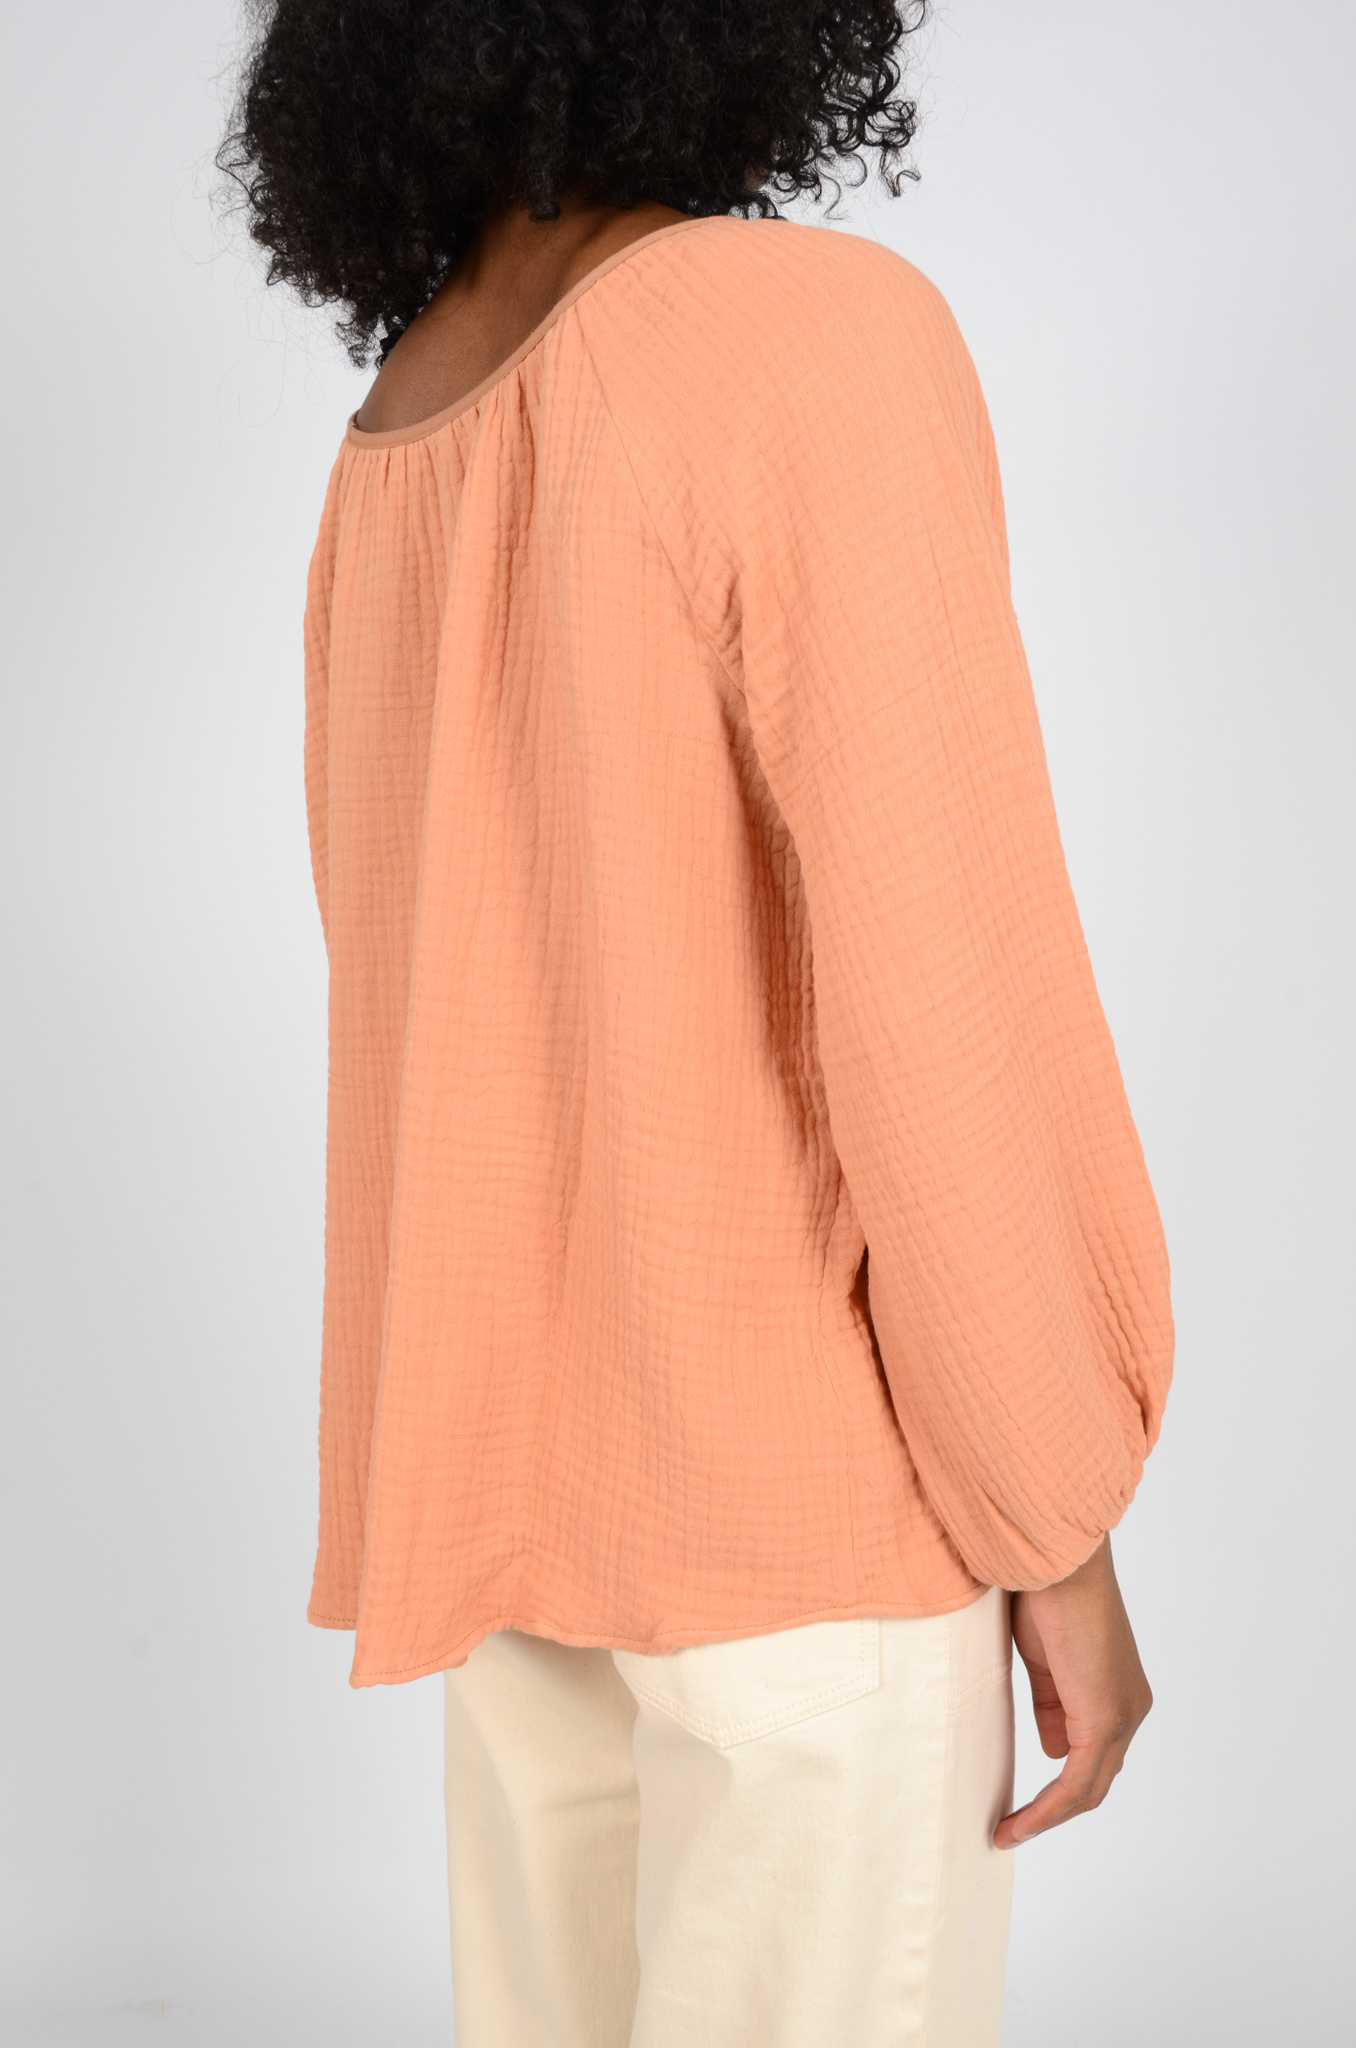 MORNING BLOUSE IN PEACH-4